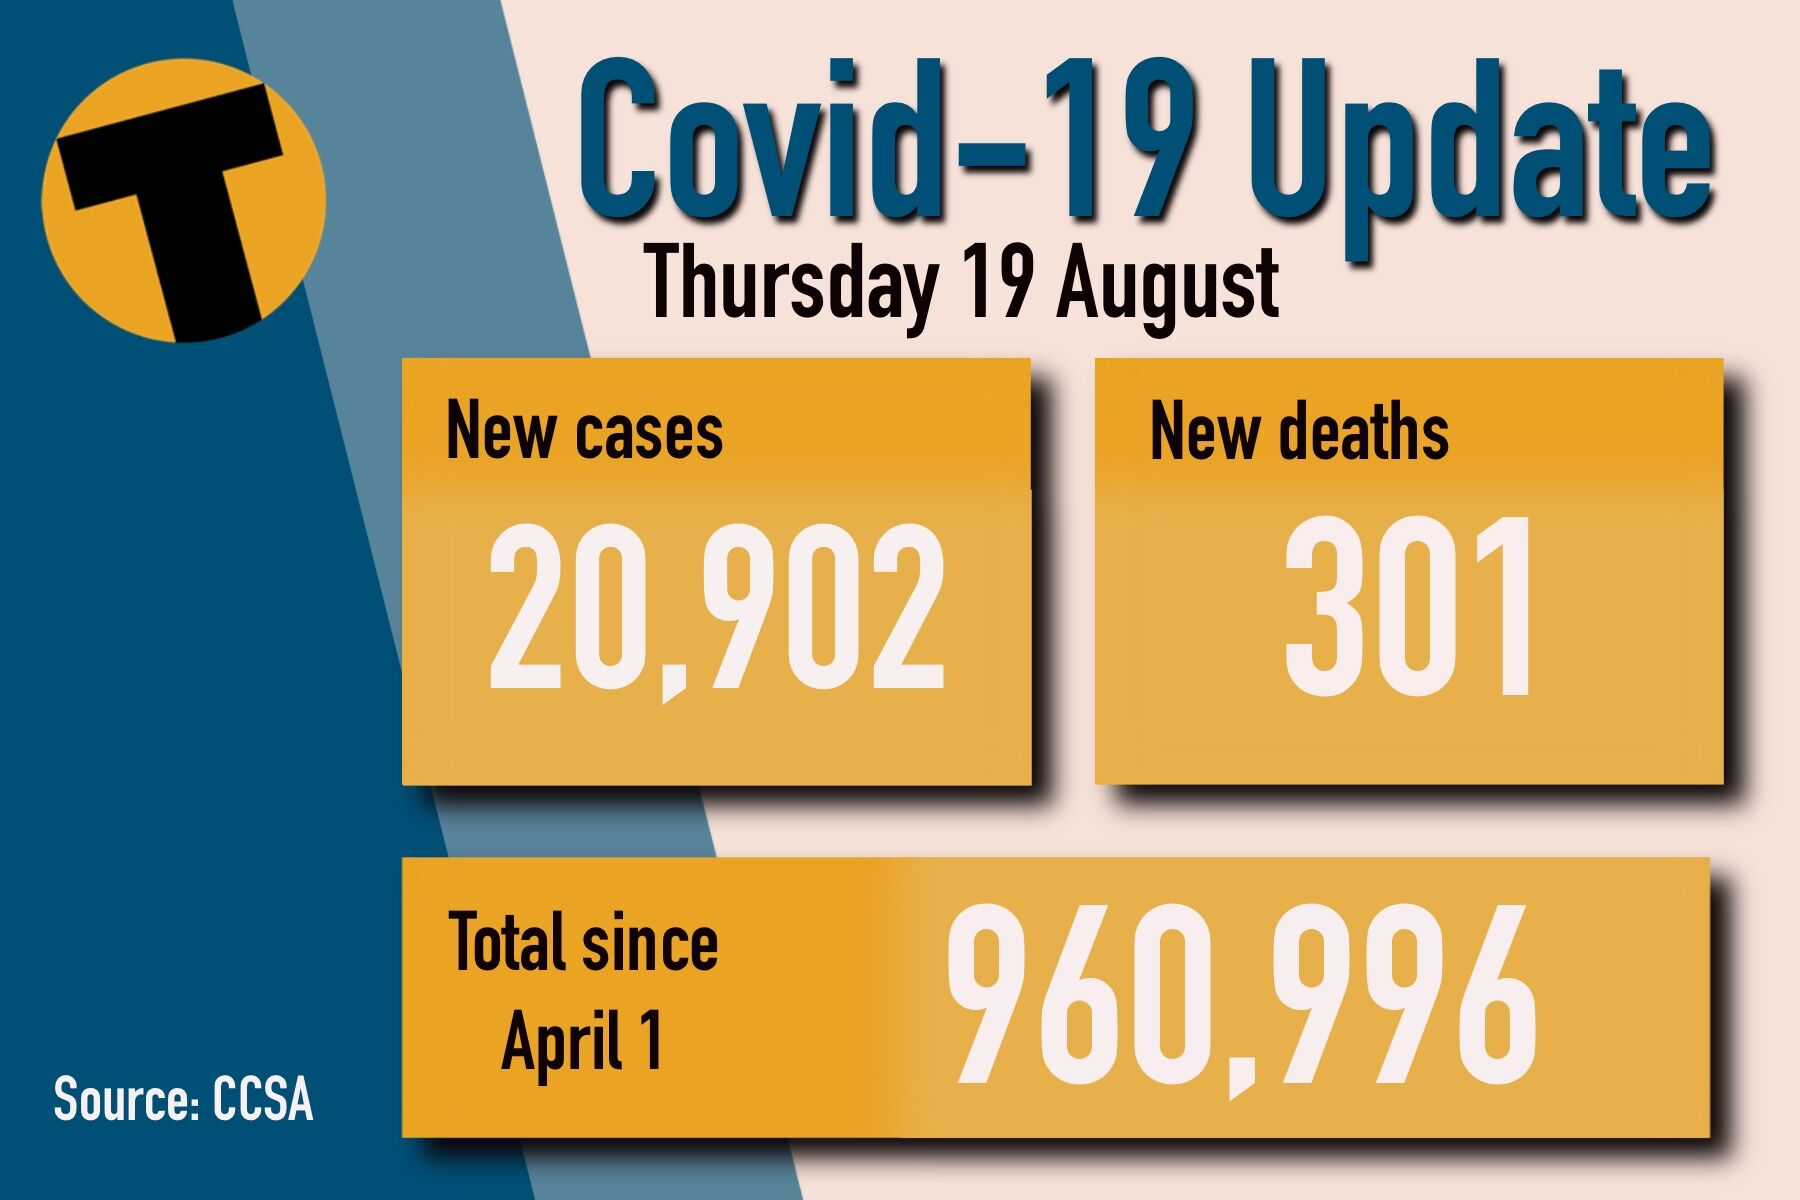 Thursday Covid Update: 20,902 new cases and 301 deaths   News by Thaiger